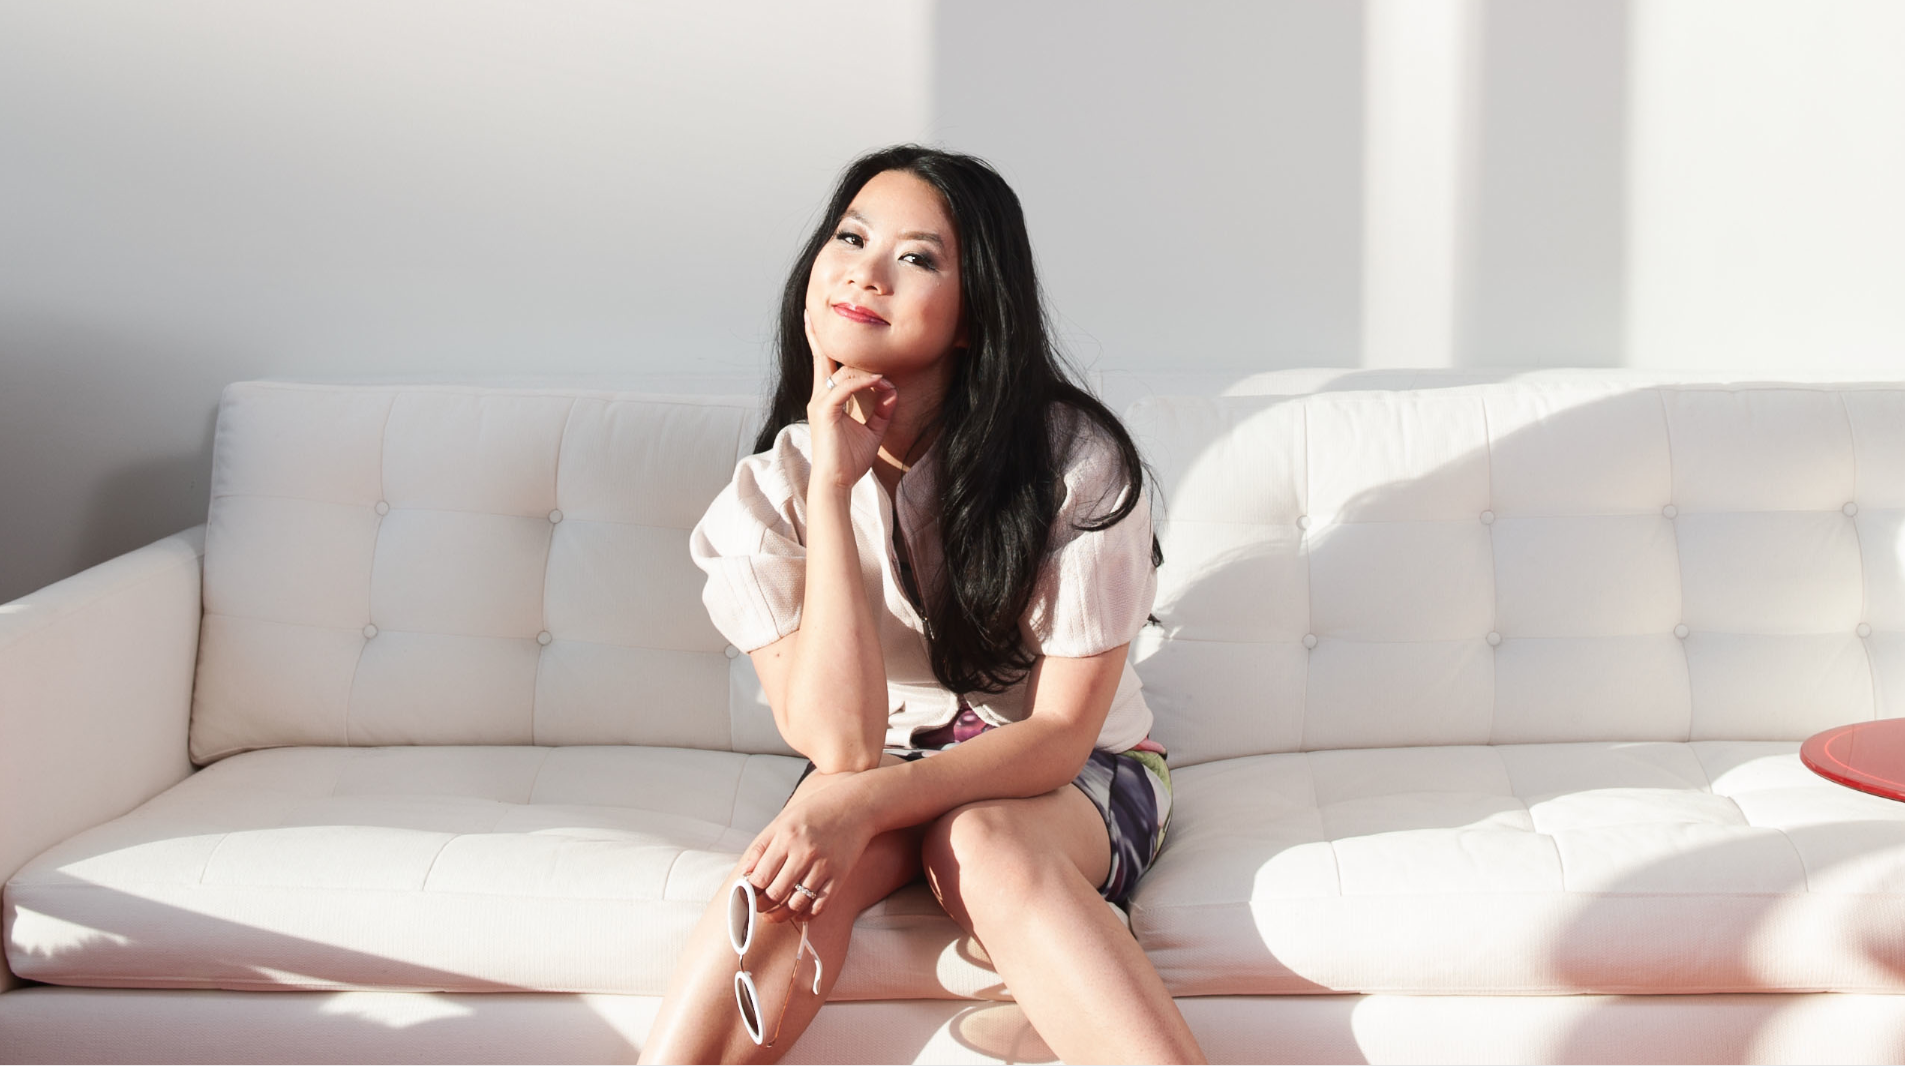 Michelle Lam, founder, True & Co.